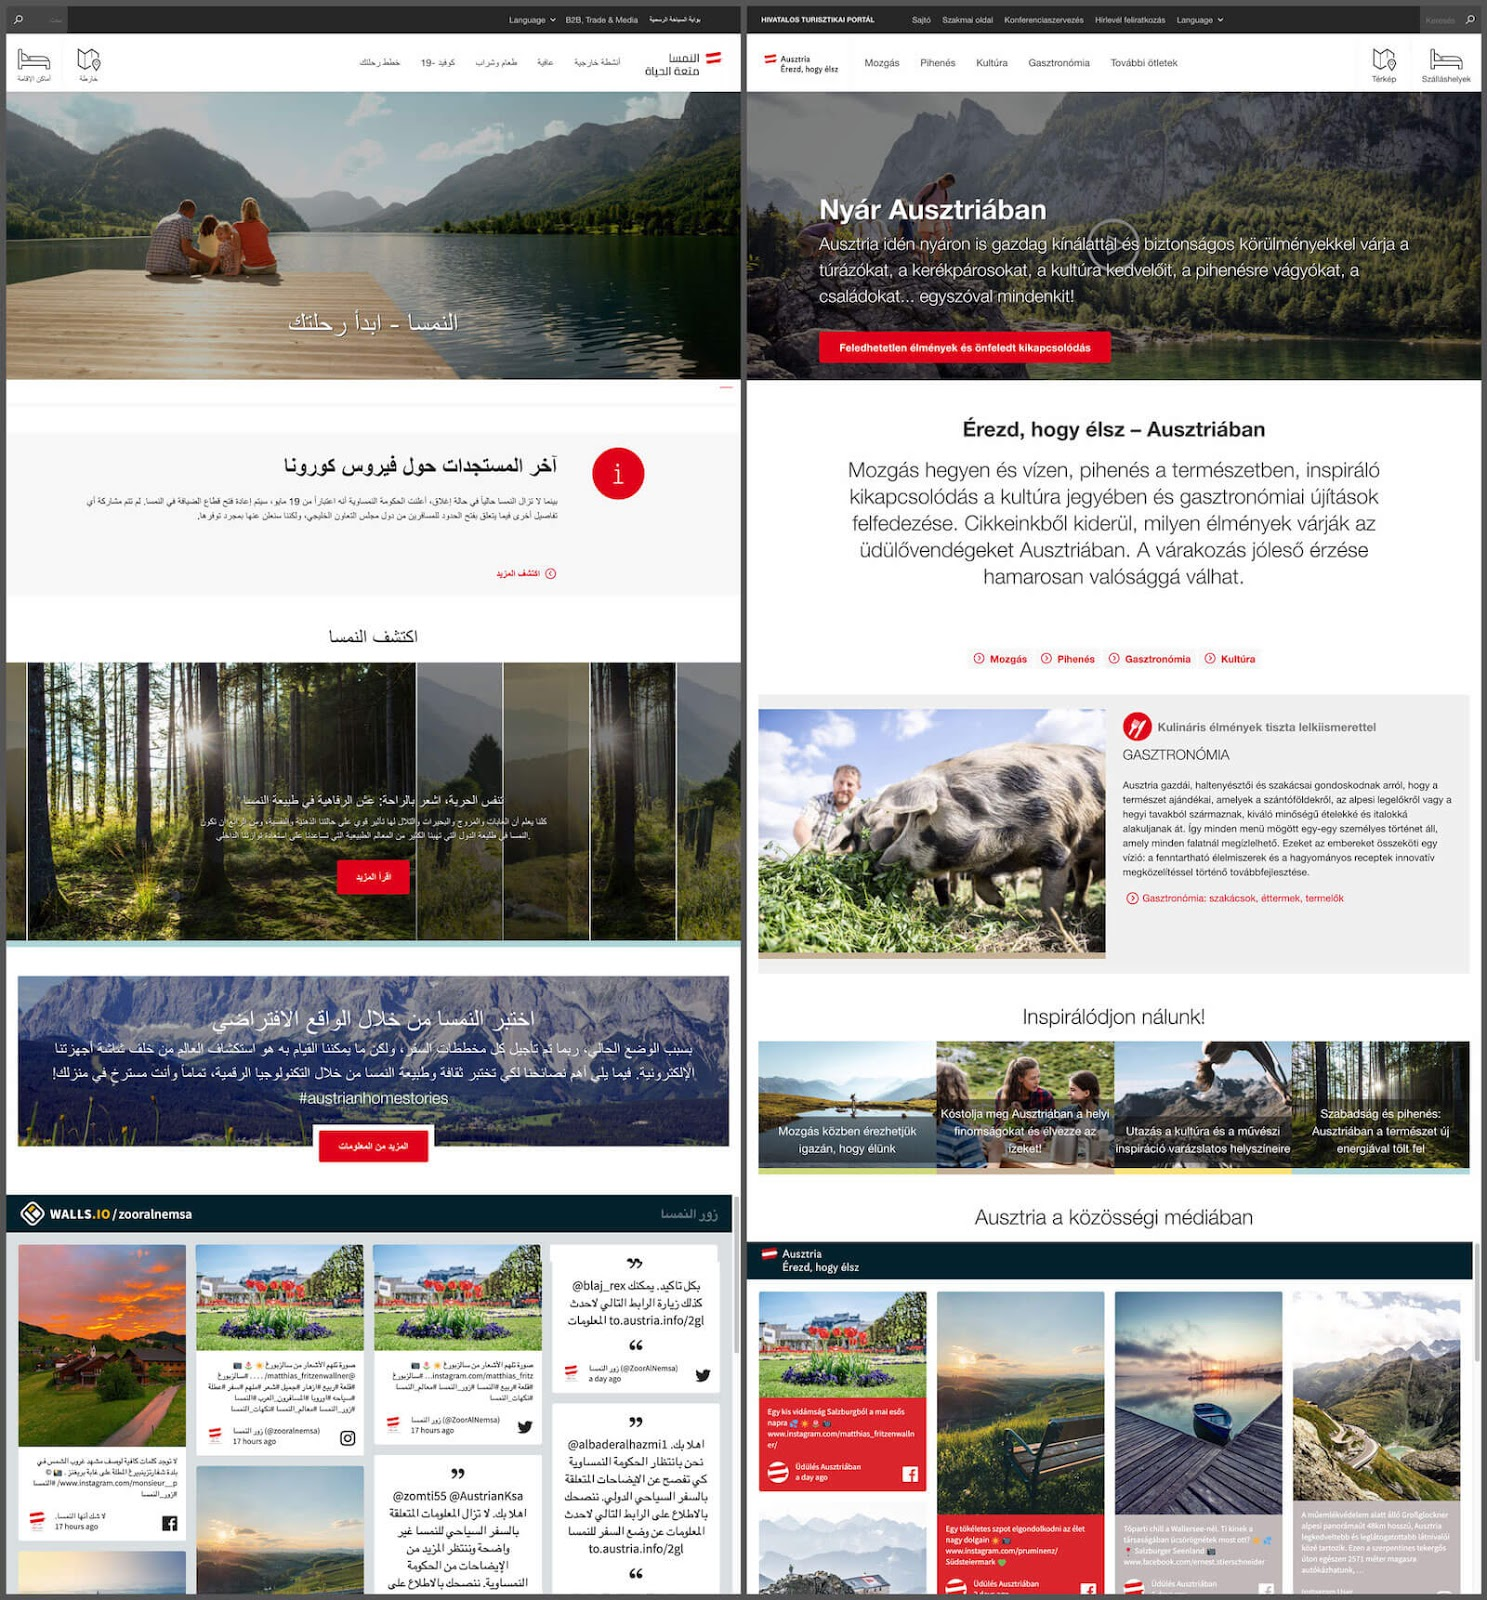 Screenshot of two social media walls by the Austrian National Tourist Office in two languages. On the left, is the website for the Arabic region. On the right, the Hungarian website.